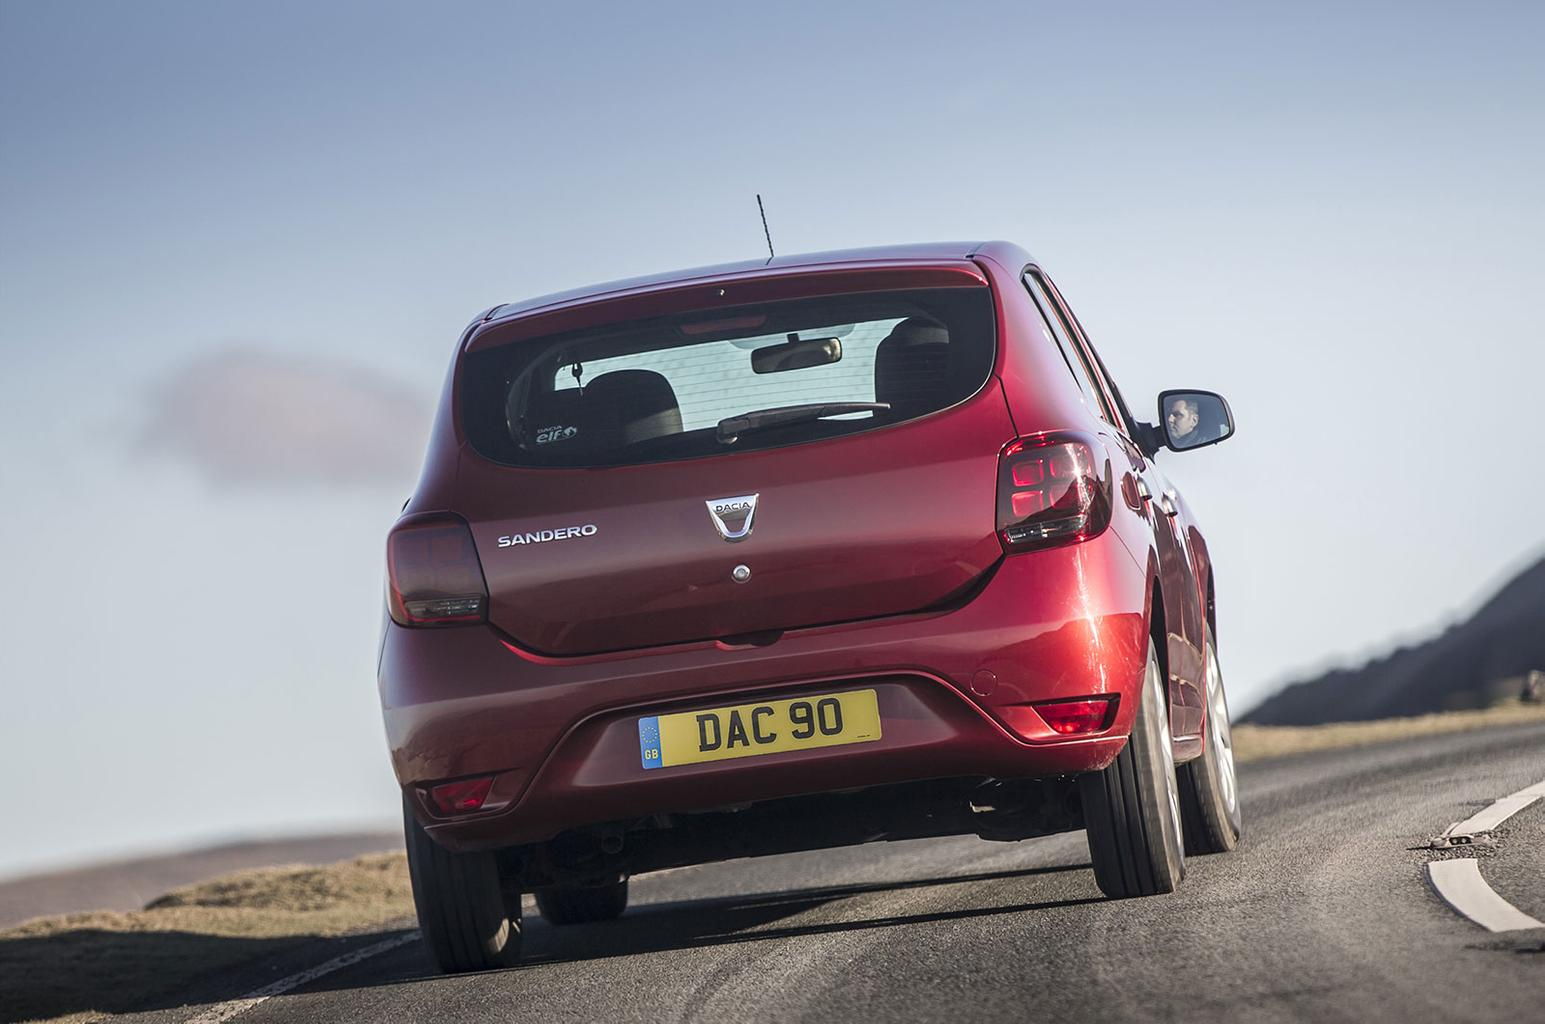 Dacia Sandero discounts: UK's cheapest new car just got cheaper